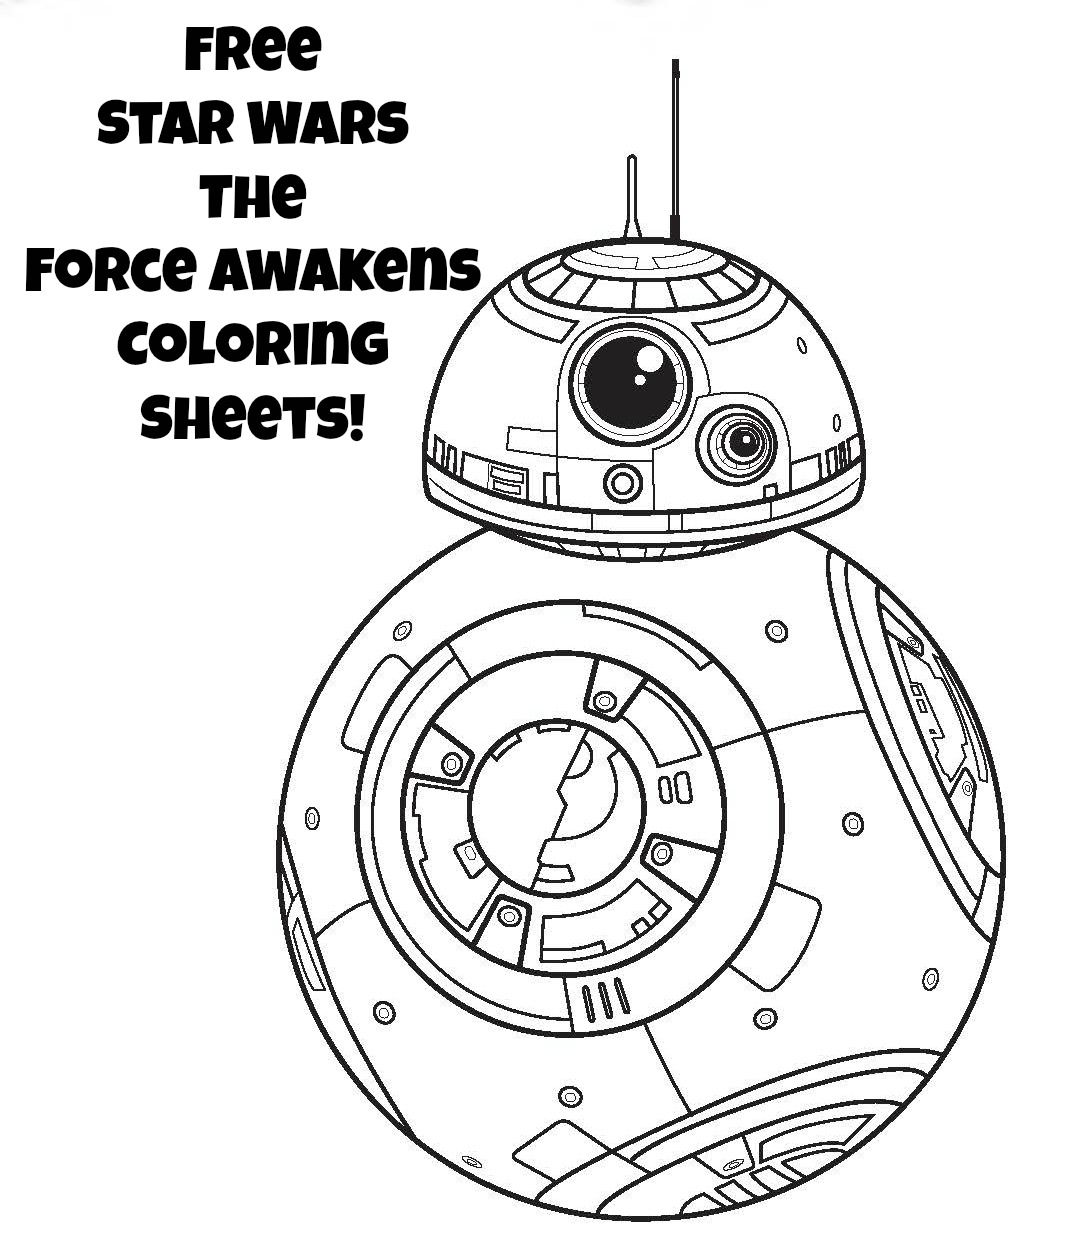 Star Wars Coloring Pages The Force Awakens Coloring Pages Star Coloring Pages Star Wars Colors Star Wars Crafts